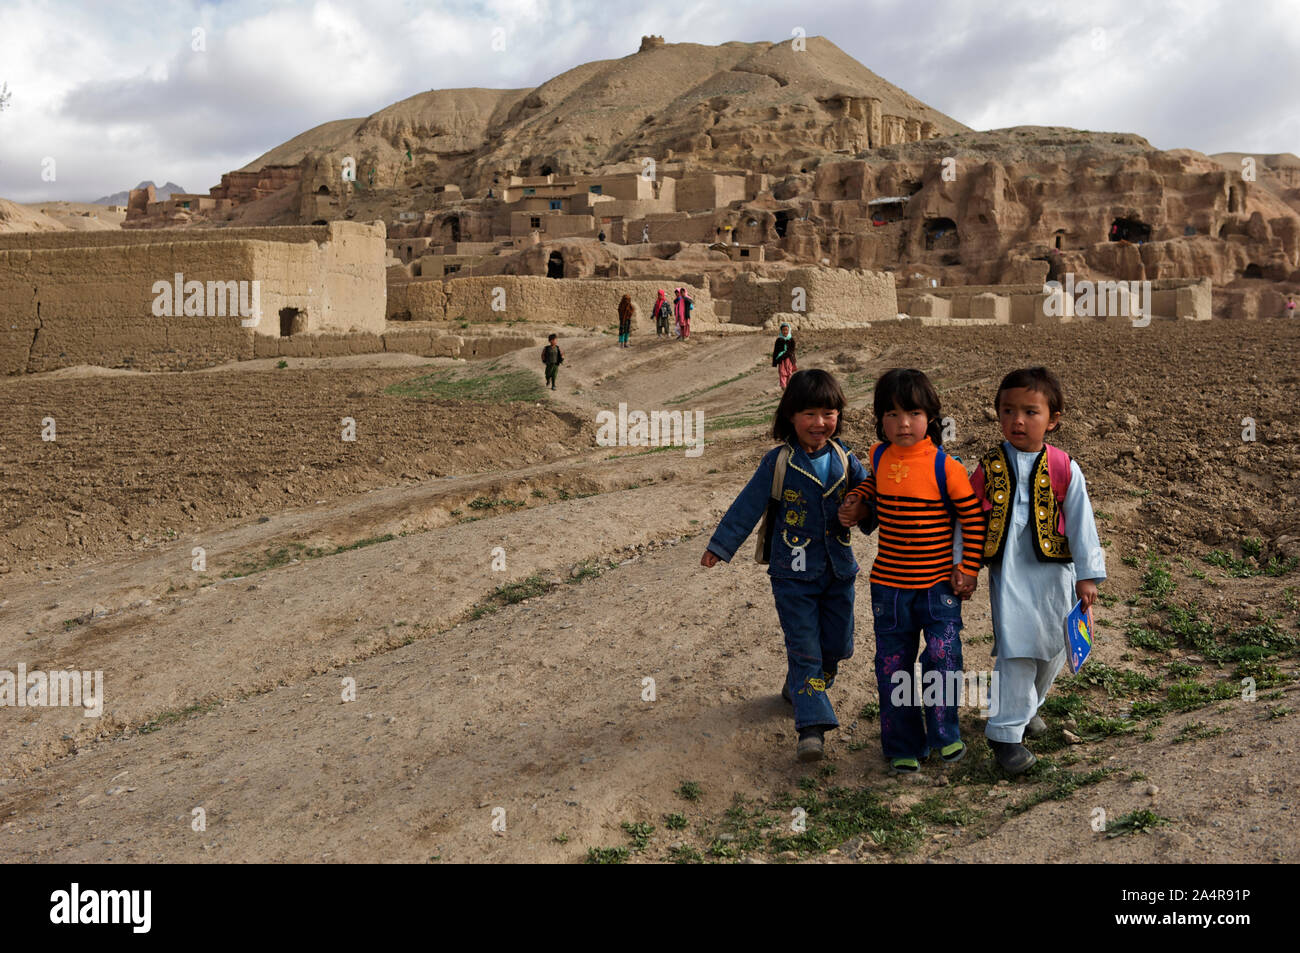 A group of children on their way to school from their village on the hills of Bamyan, in Bamyan province, Afghanistan. May 11, 2009. Stock Photo